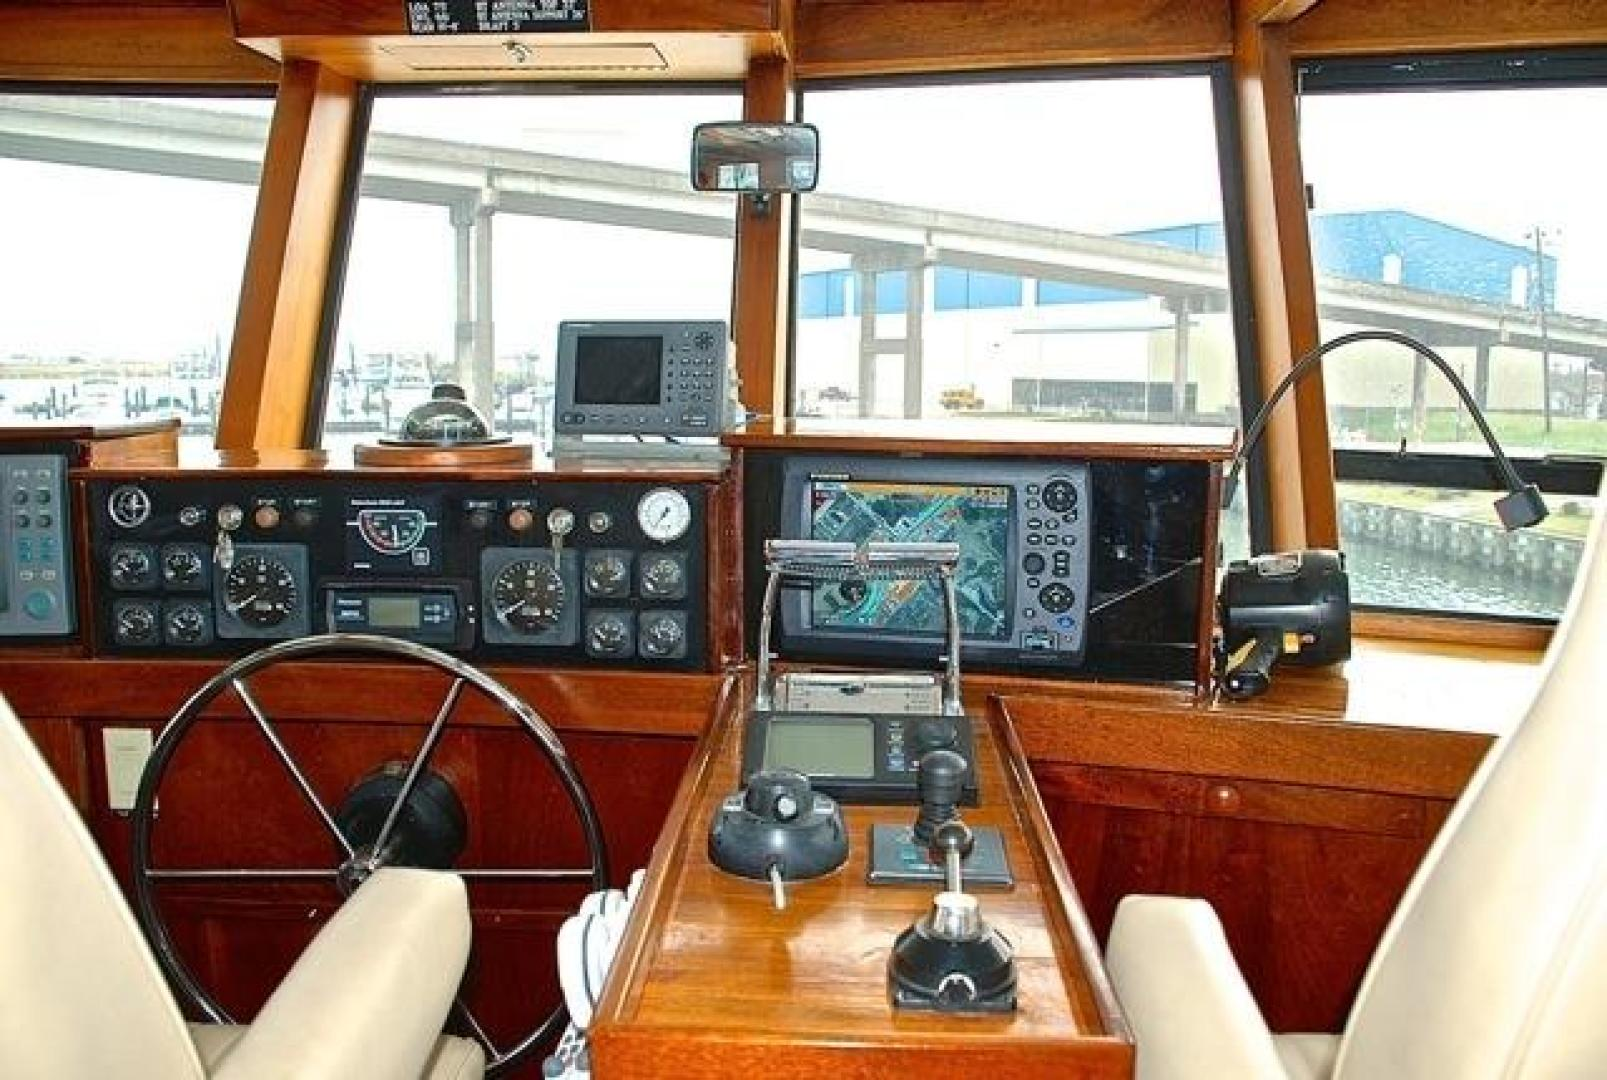 Infinity-Cockpit Motor Yacht 2001-Dont Matter Houston-Texas-United States-Pilothouse Helm View 4-1005560 | Thumbnail